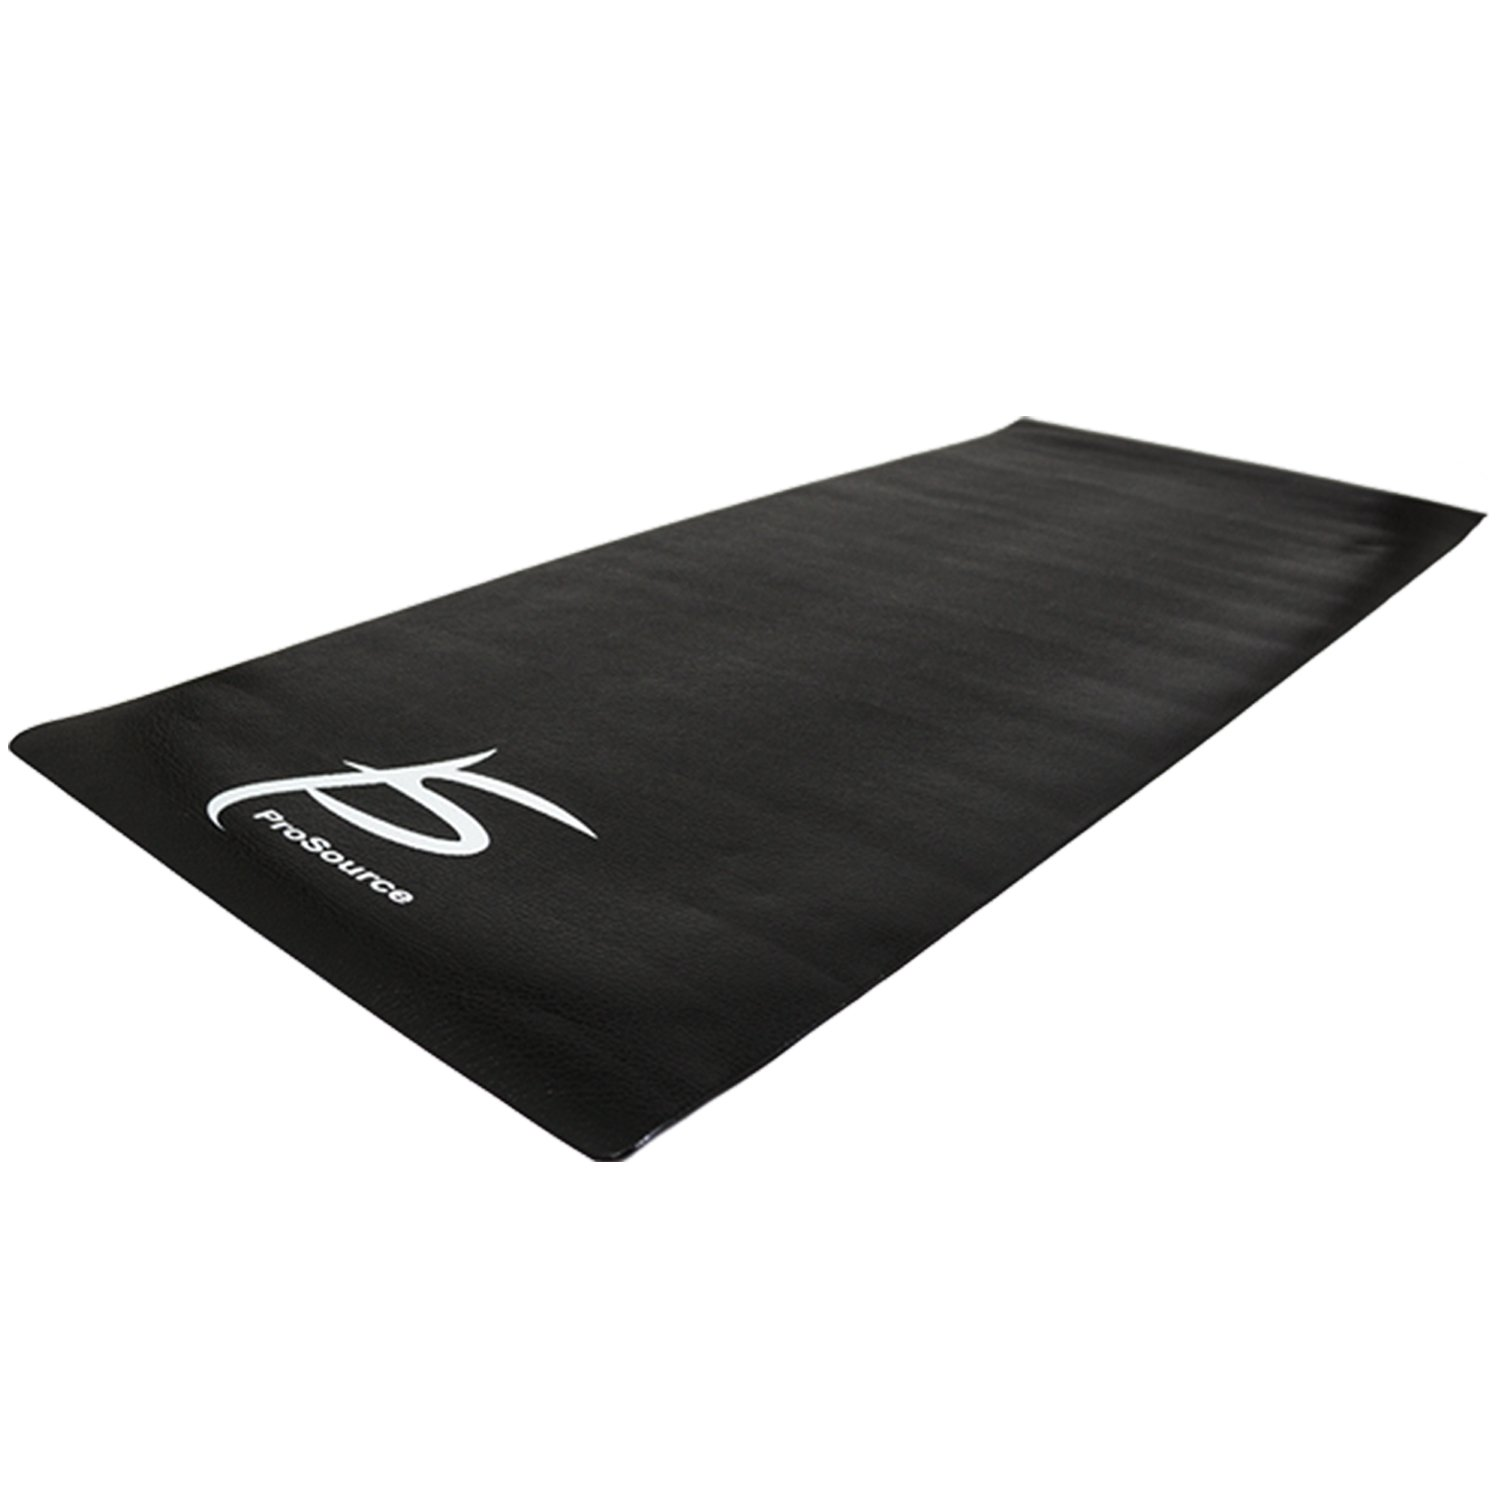 ProSource Fit Exercise Equipment & Treadmill Mat High Density PVC Floor Protector, 3 x 6.5-feet